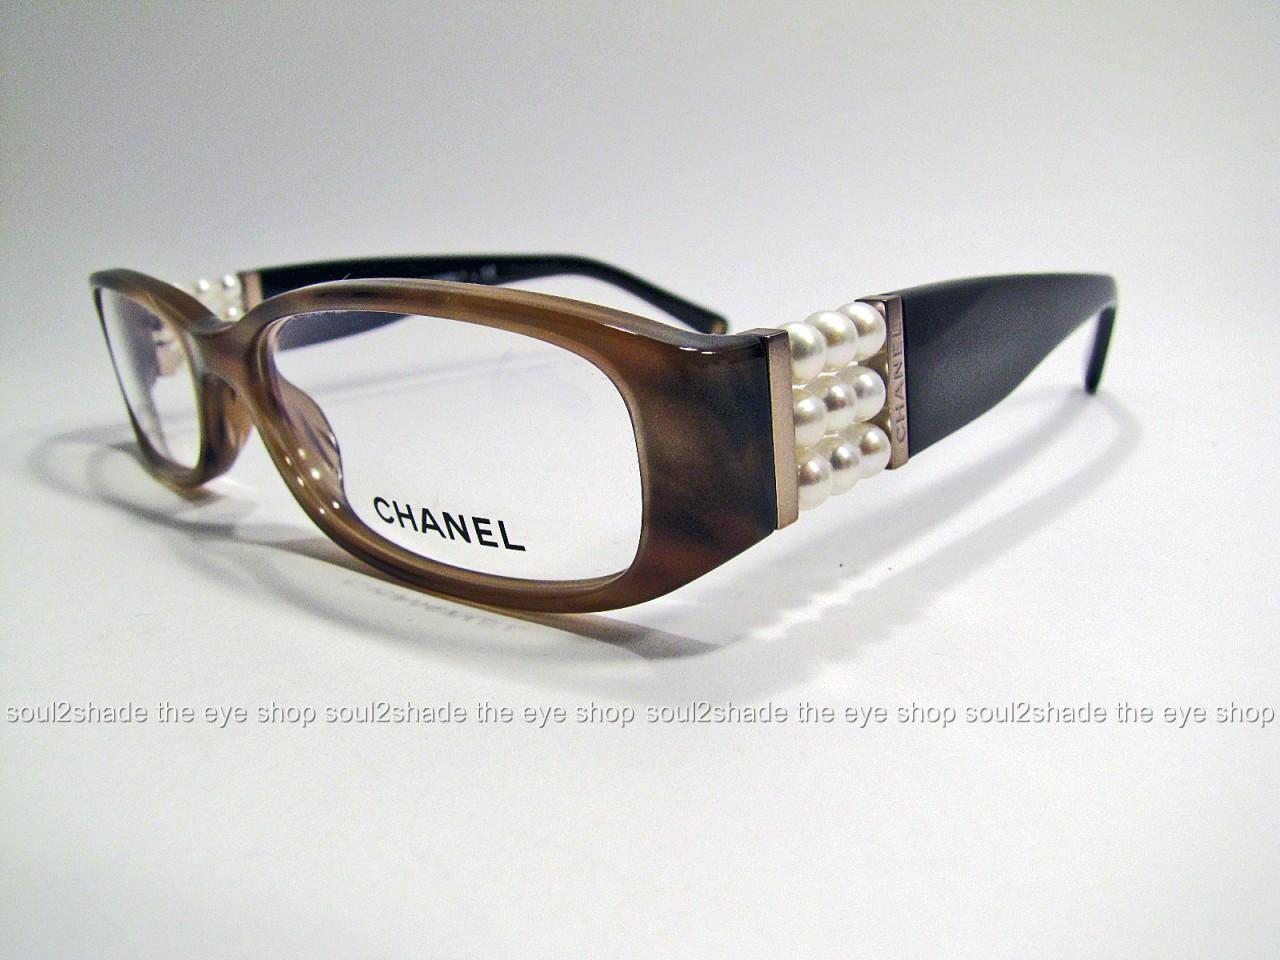 New Authentic Chanel 3155h Perle Eyeglasses Frame Rx ...